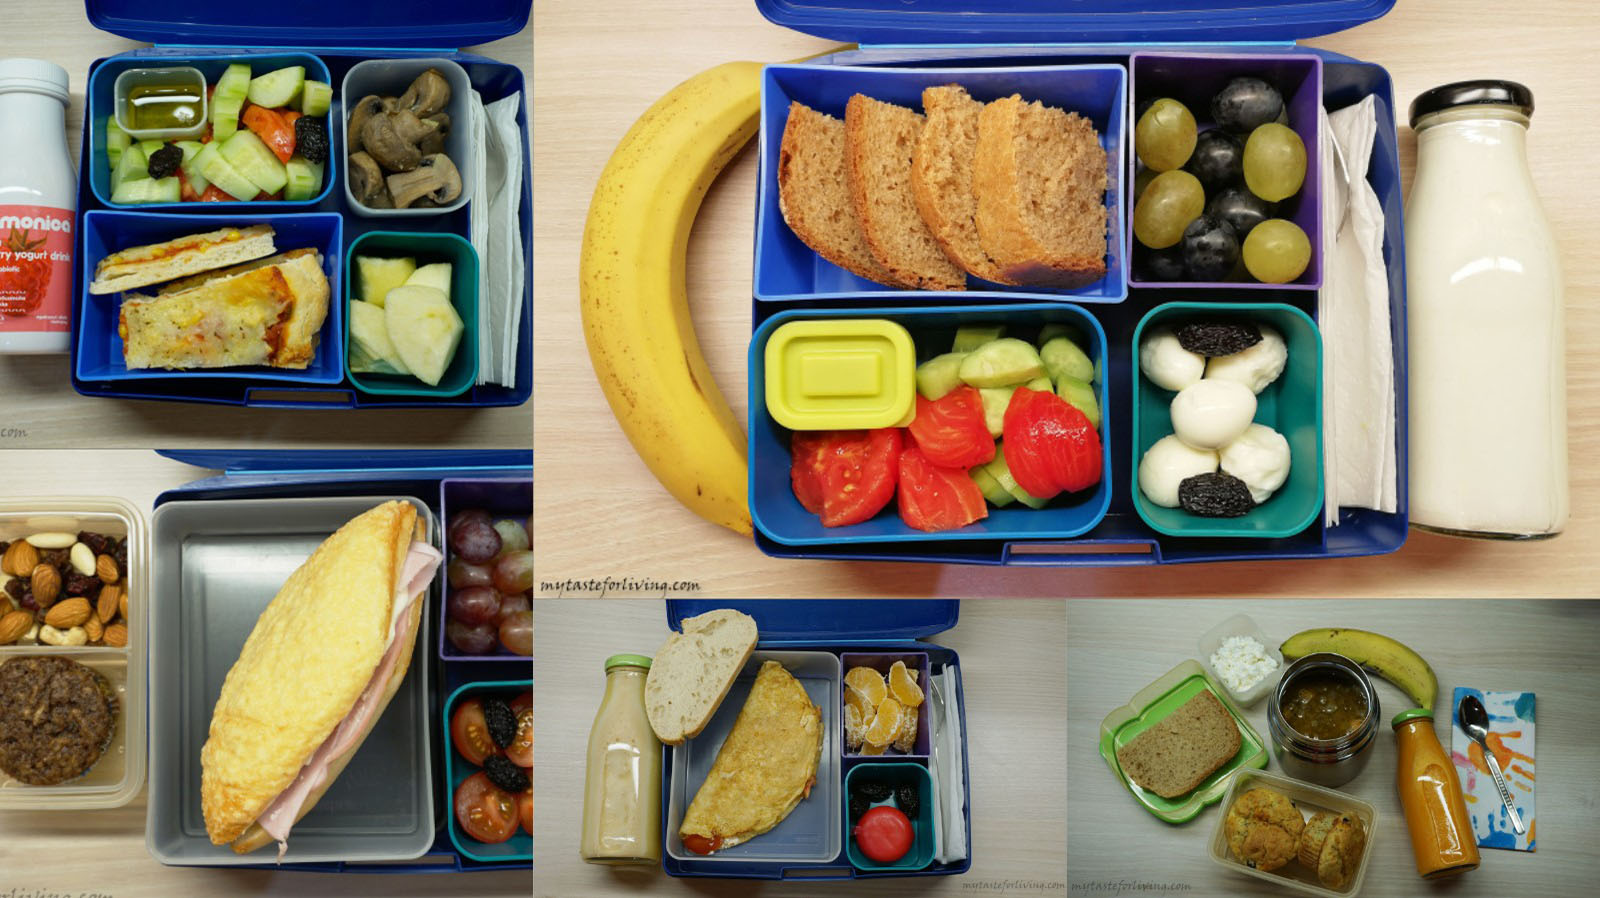 New 5 ideas for homemade food for school.